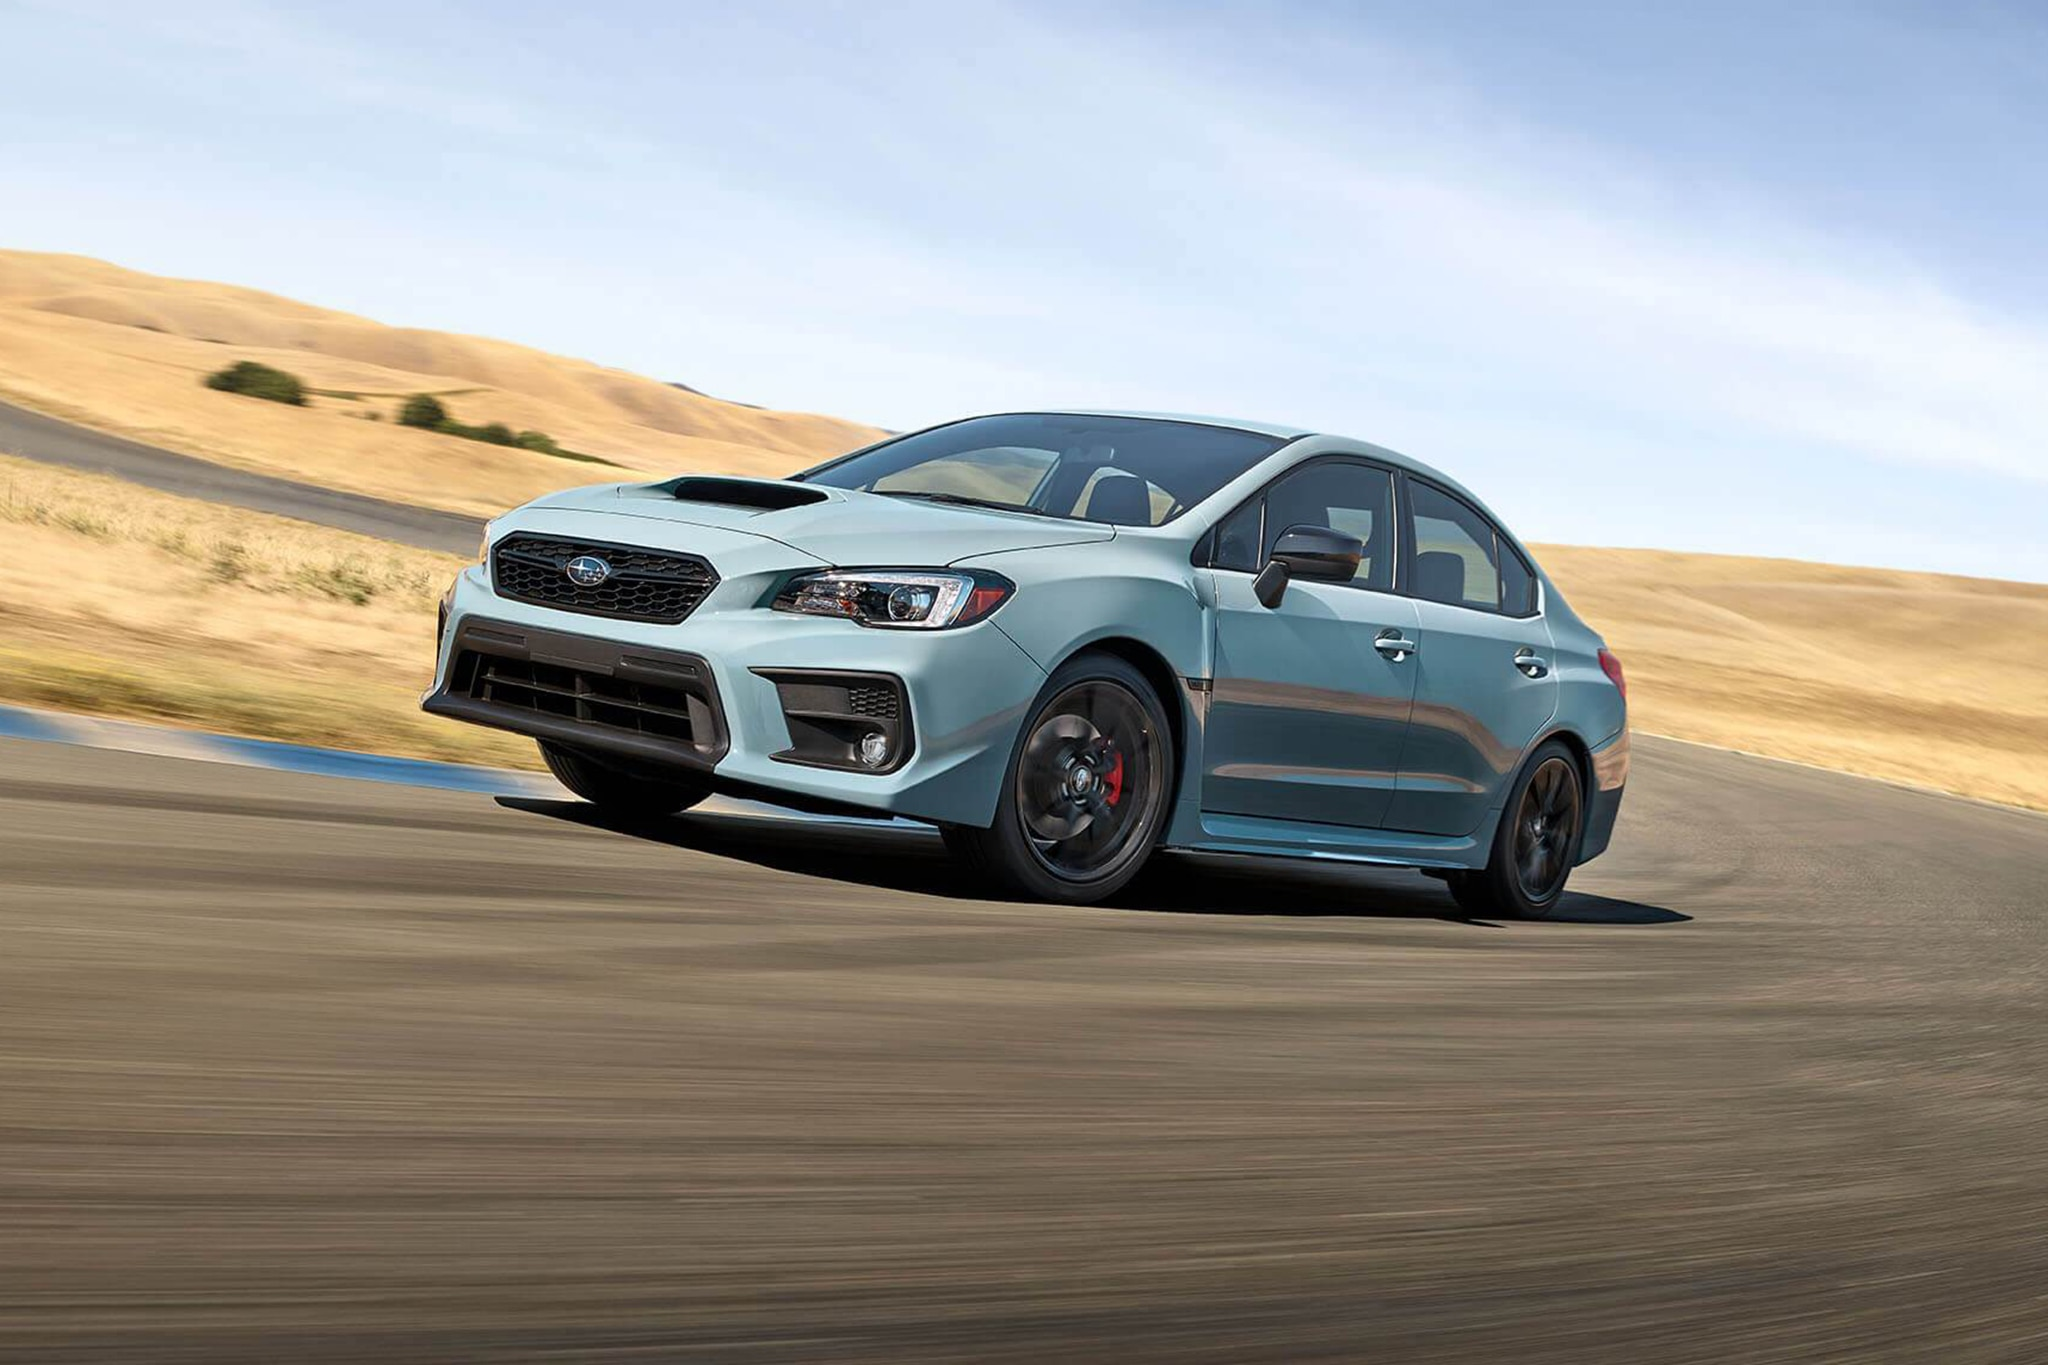 2019 Subaru WRX Series Gray Review: Looks Can Deceive | Automobile